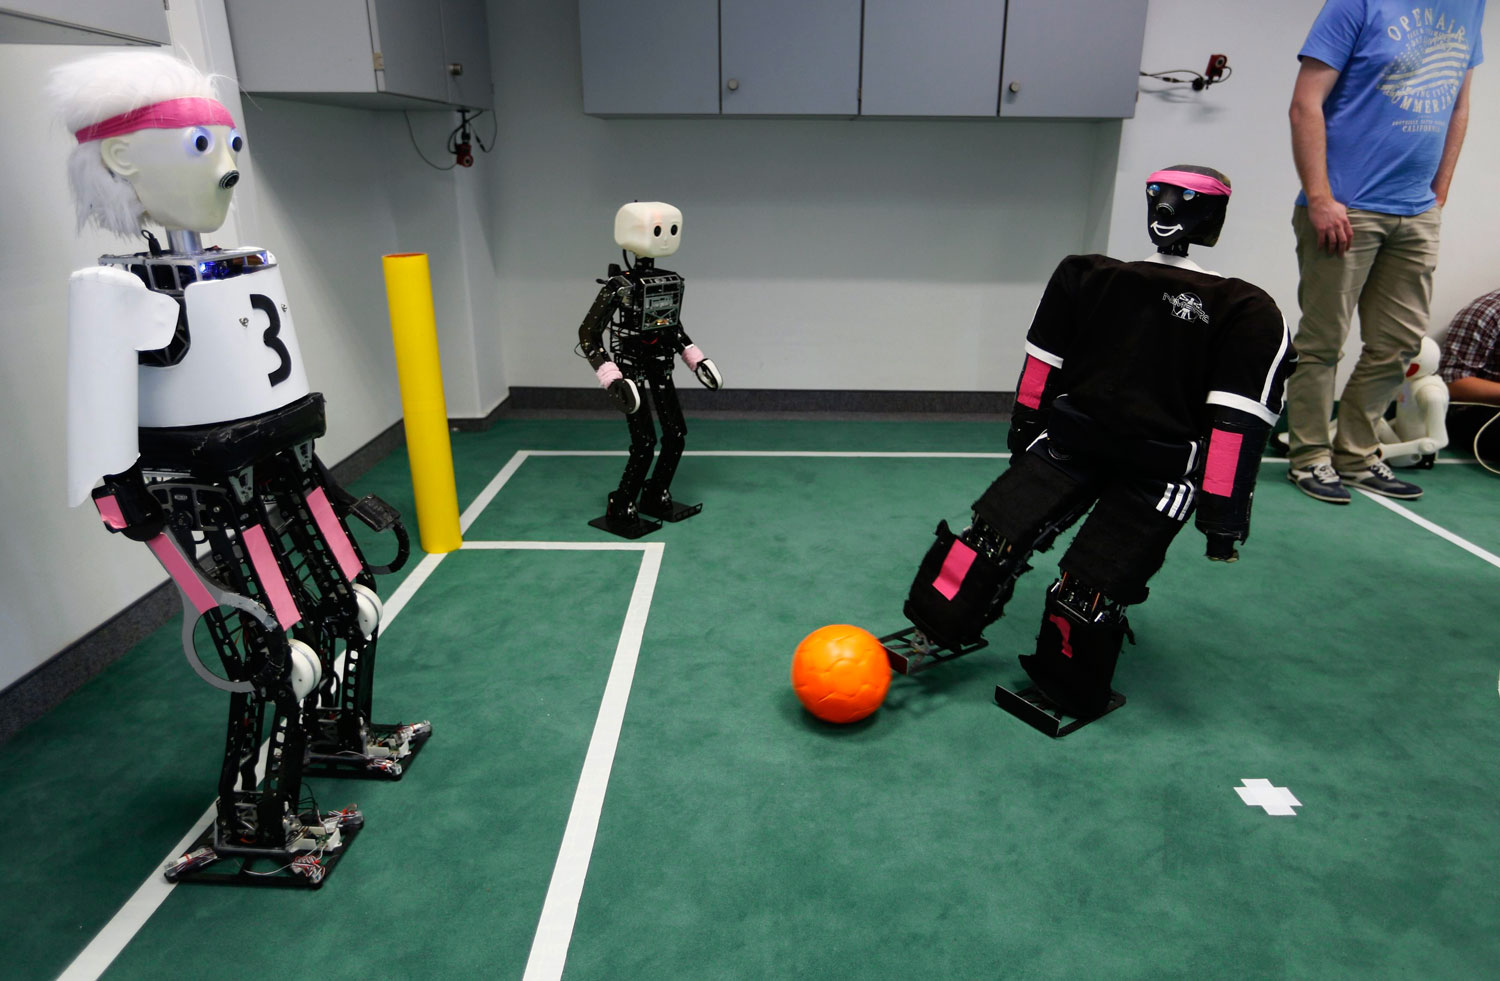 Humanoid robots are seen at the Institute for Computer Science at the University of Bonn in Bonn July 3, 2014.